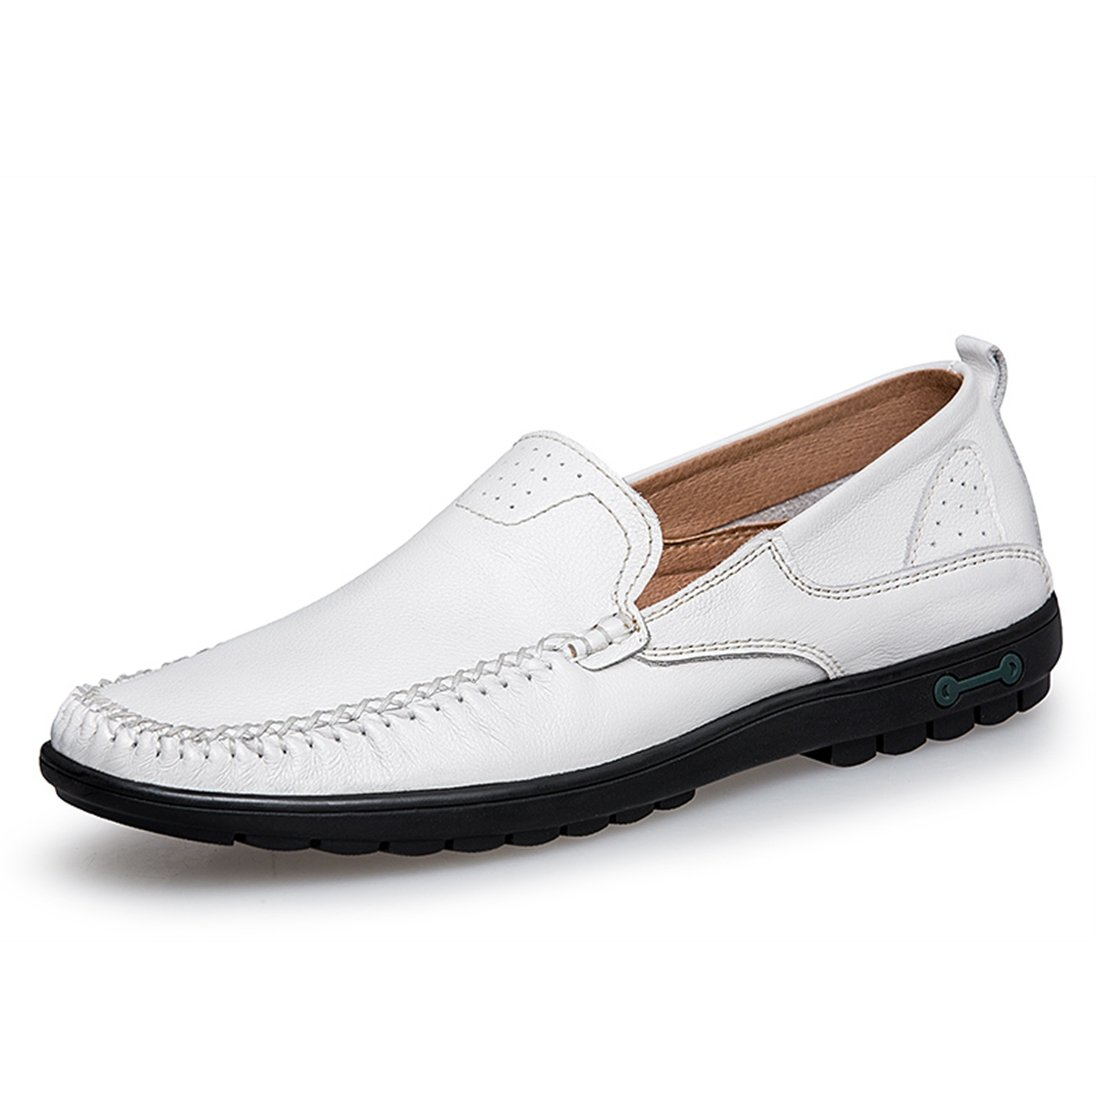 Boy's Men's Rubber Sole Stitched Fashion Loafers